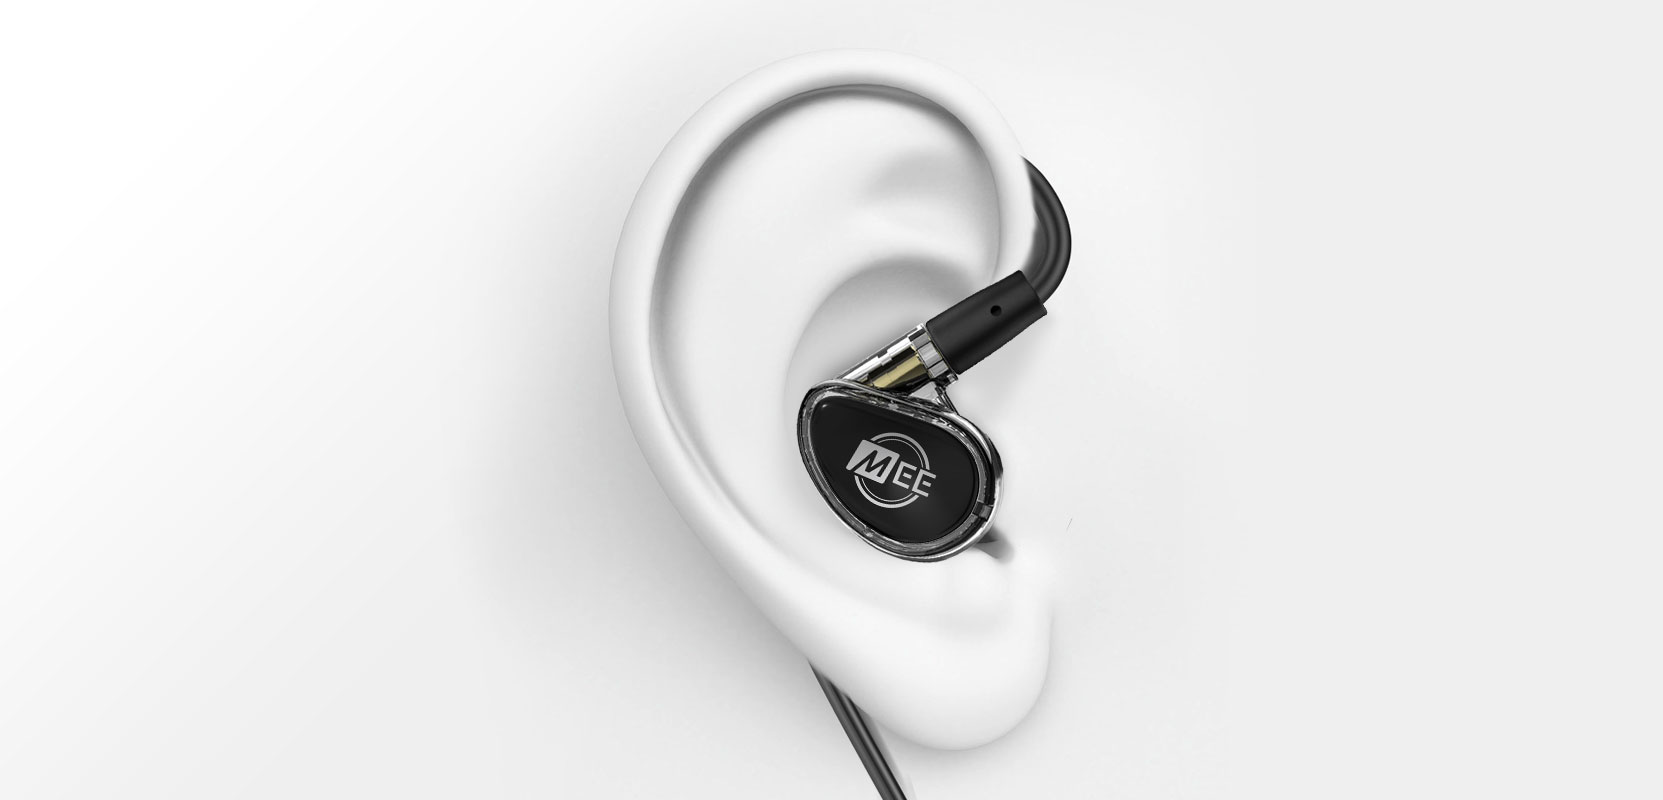 Ear with smoke-colored MX PRO IEM headphones